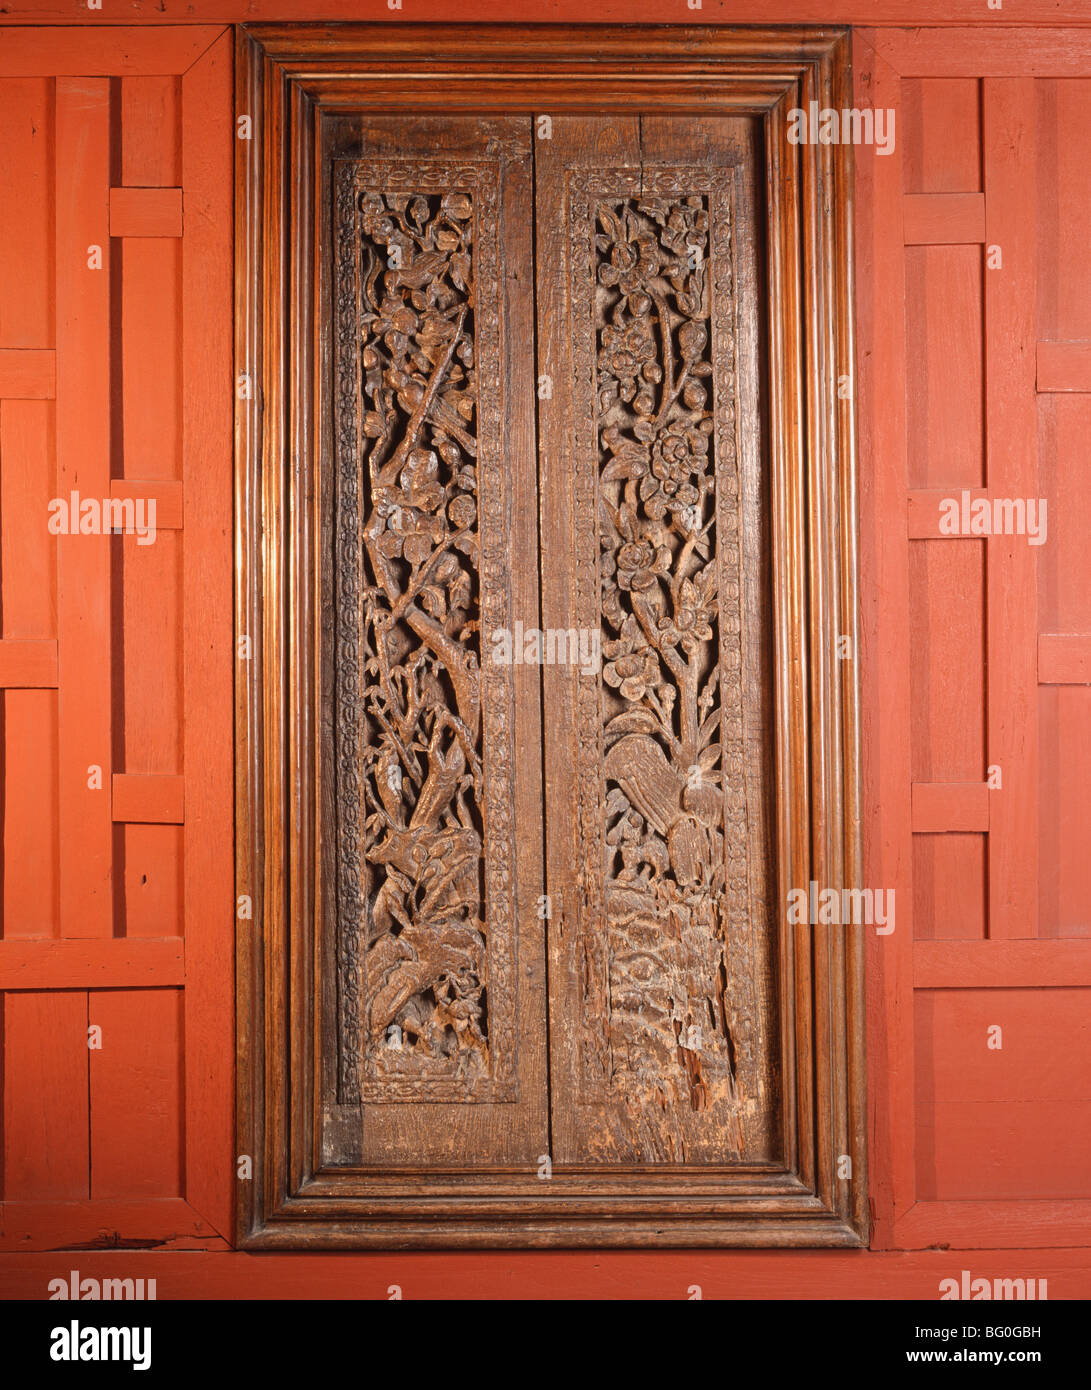 Detail of solid teak doors, Jim Thompson's House, Bangkok, Thailand, Southeast Asia, Asia - Stock Image